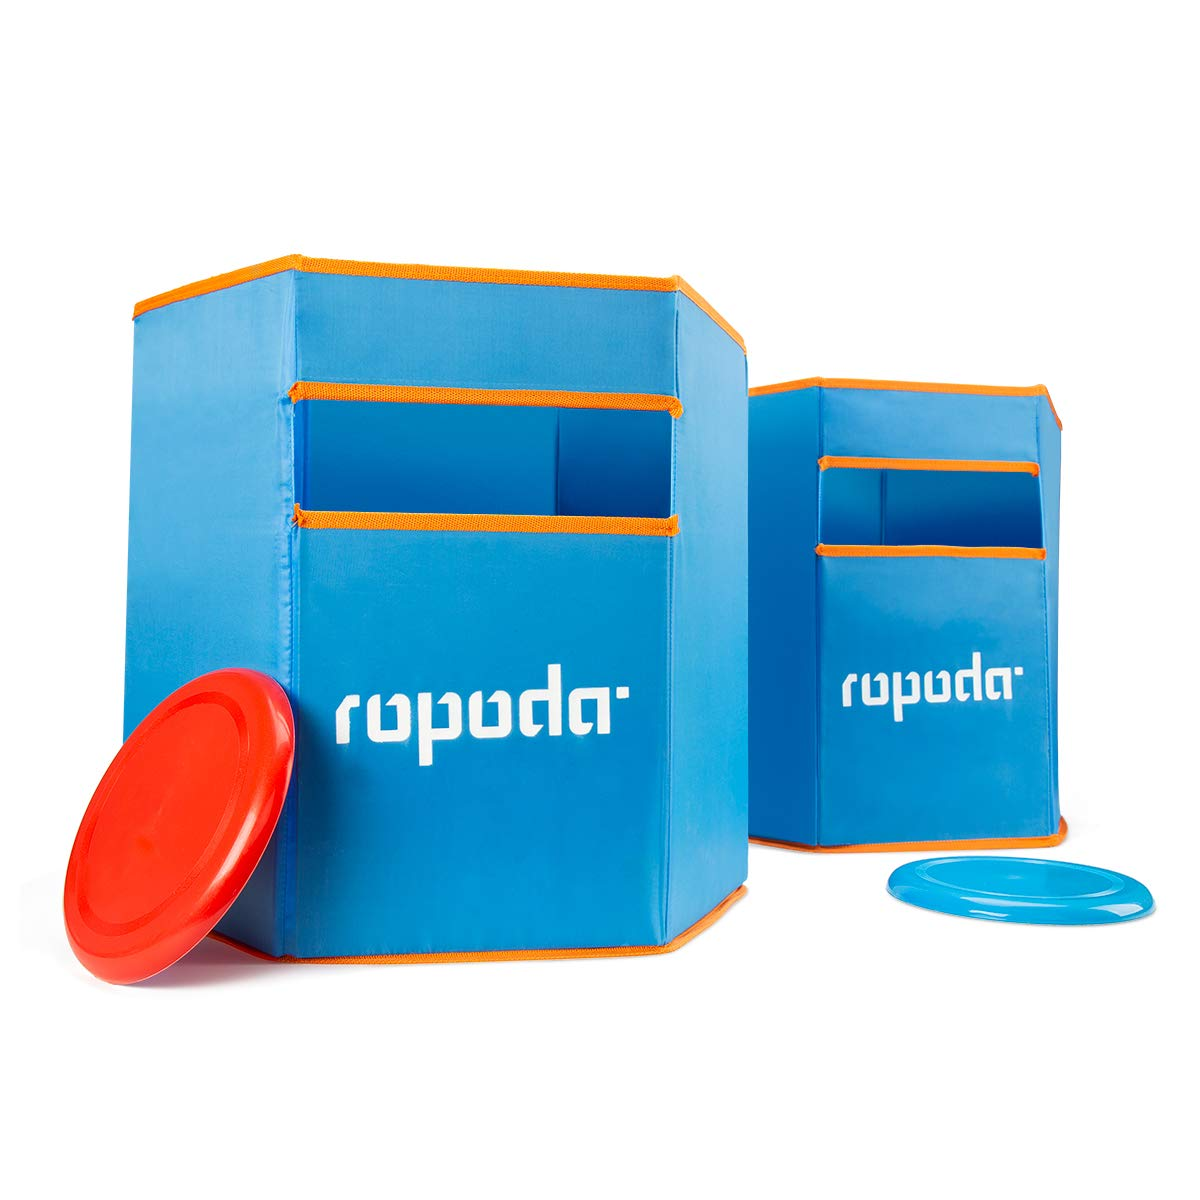 ROPODA Sports Folding Disc Slam - Durable, Weather Resistant Material - Toss Dunk Game Set Includes 2 Disc Slam Targets and 2 Flying Disc by ROPODA